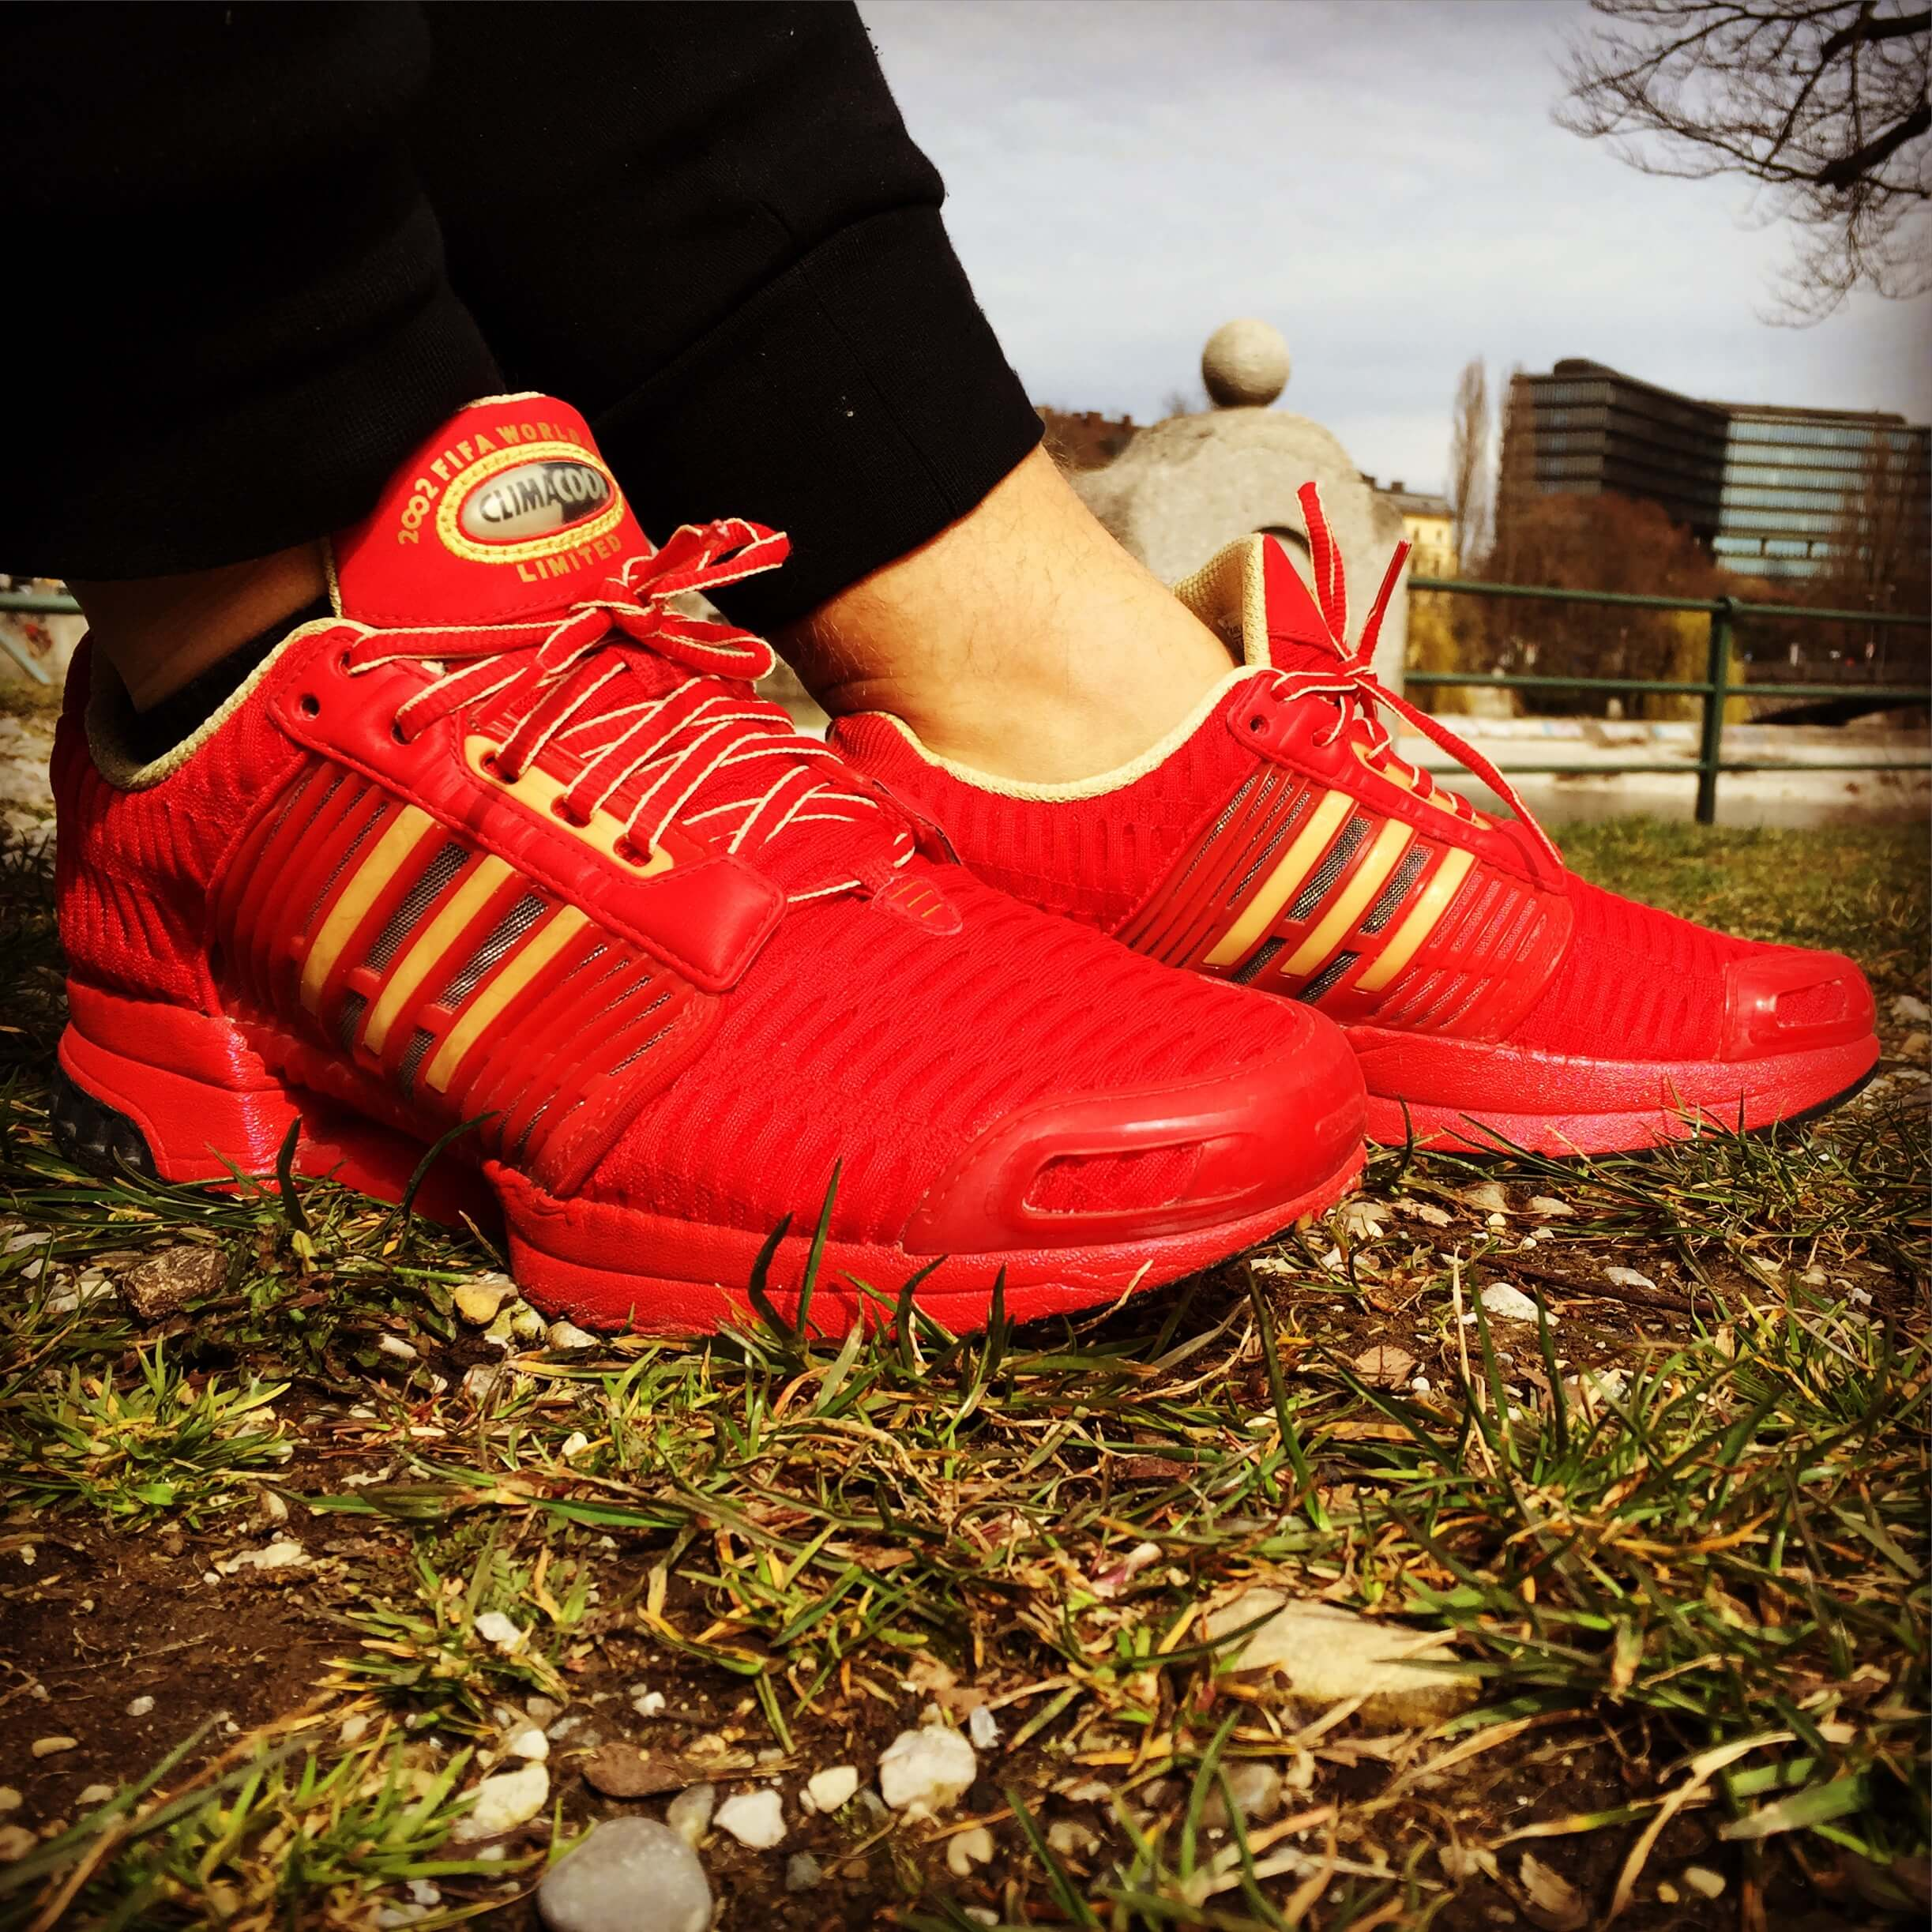 Adidas-ClimaCool-Coca-Cola-Side-View-Benstah-Onfeet